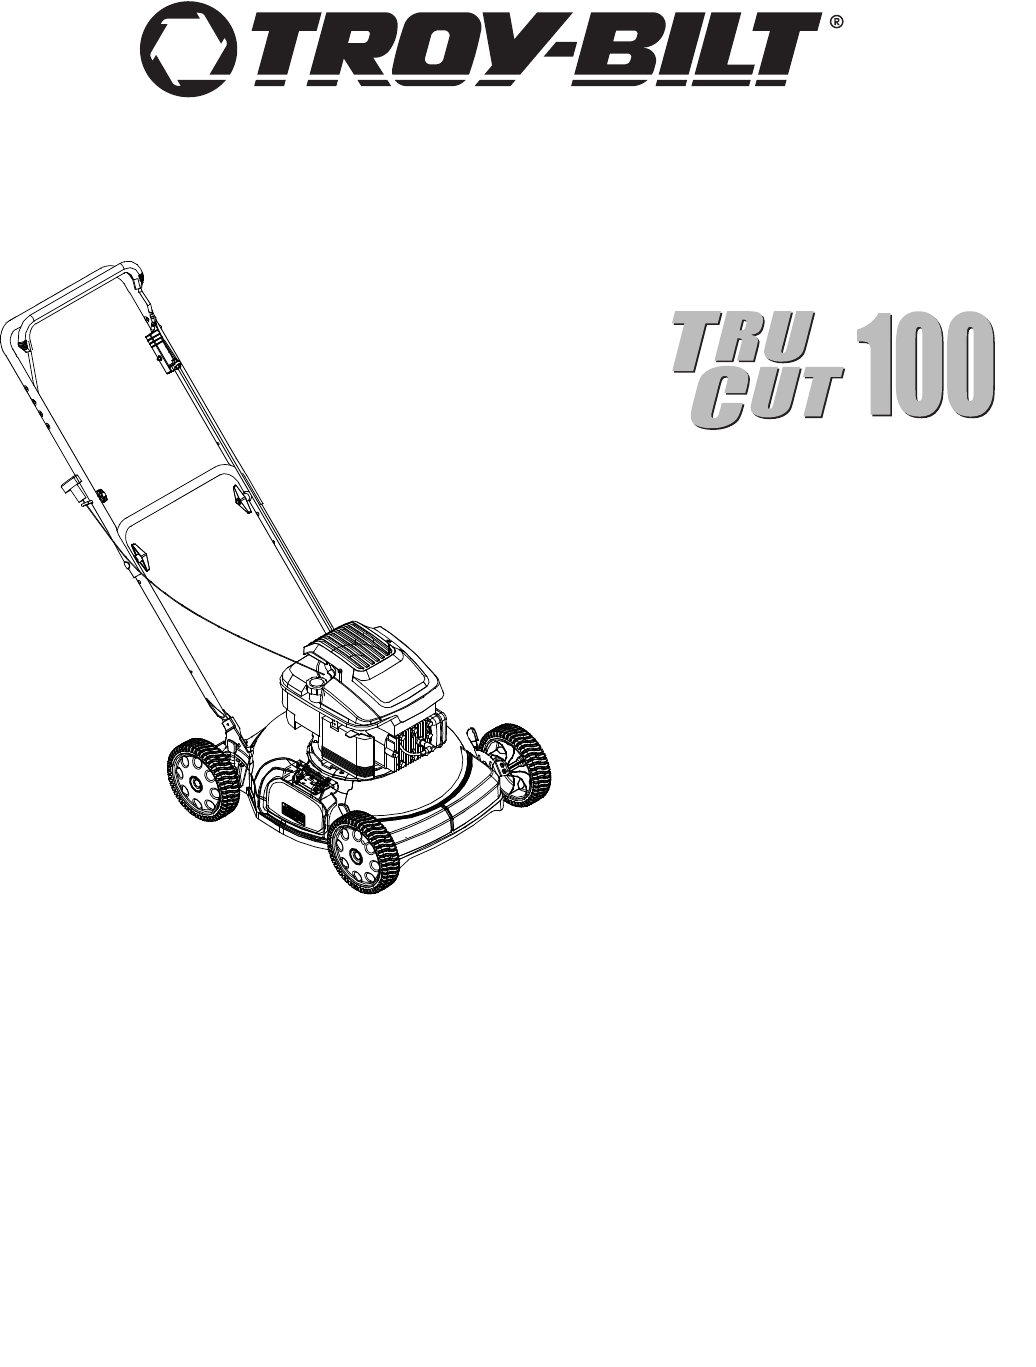 Troy-Bilt Lawn Mower TRU CUT 100 User Guide